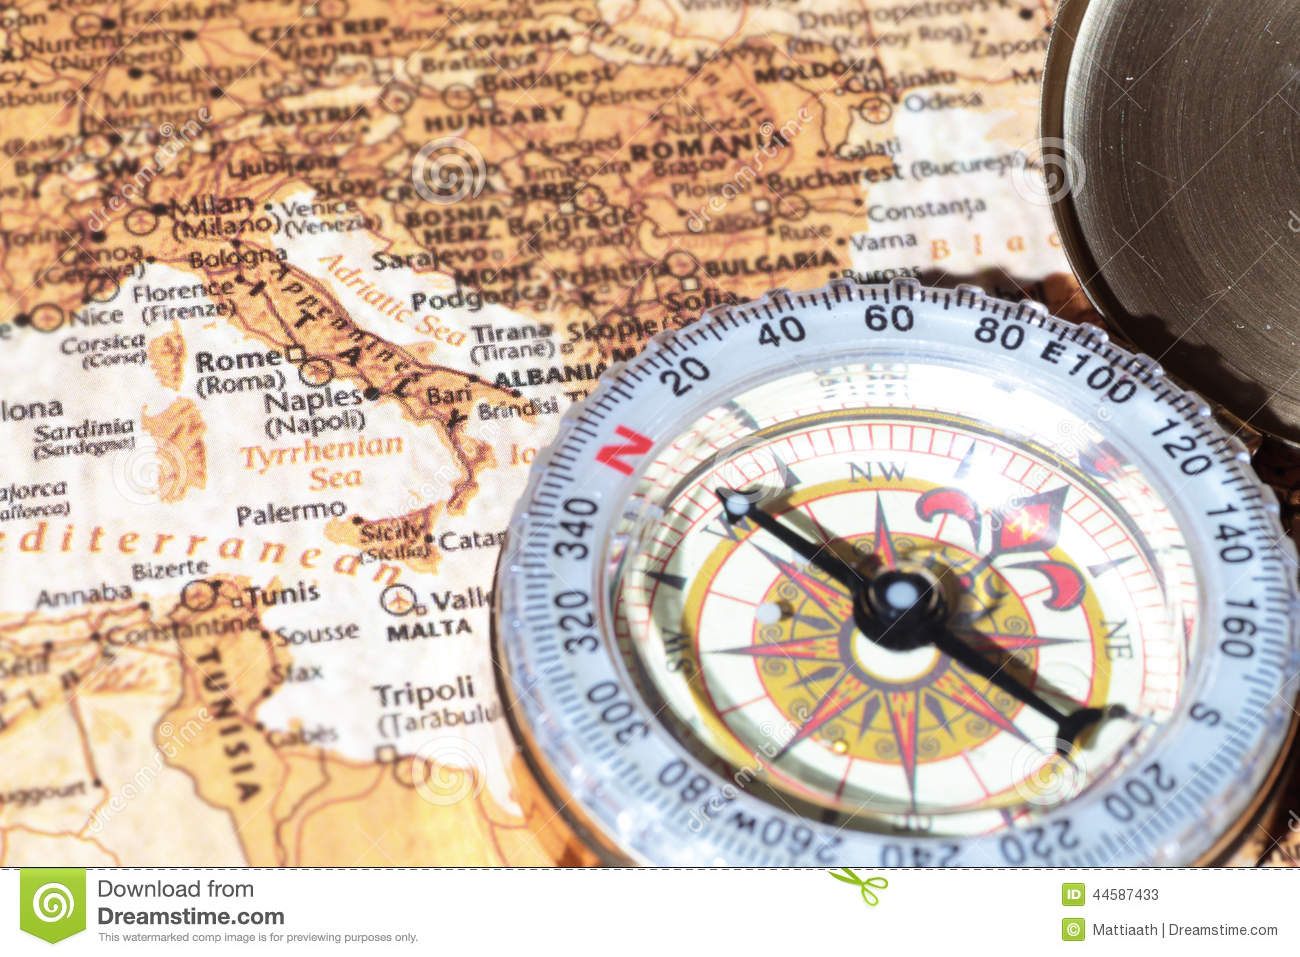 Old paris street map royalty free stock photo image 15885665 - Travel Destination Italy Ancient Map With Vintage Compass Stock Photos